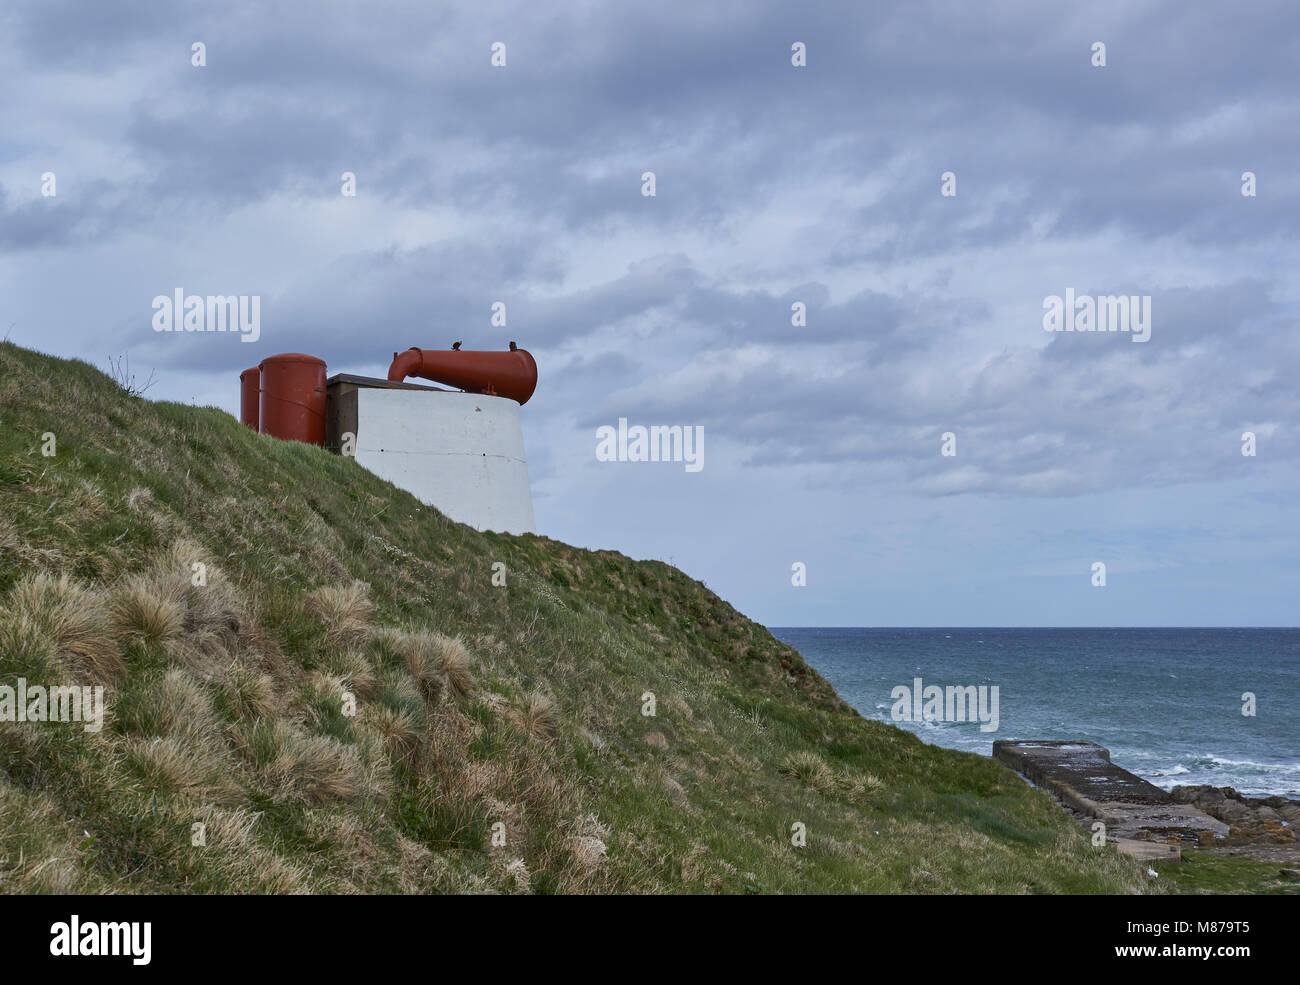 The Girdle Ness Foghorn in Aberdeenshire pointing east towards the North sea on a bright Spring day. - Stock Image